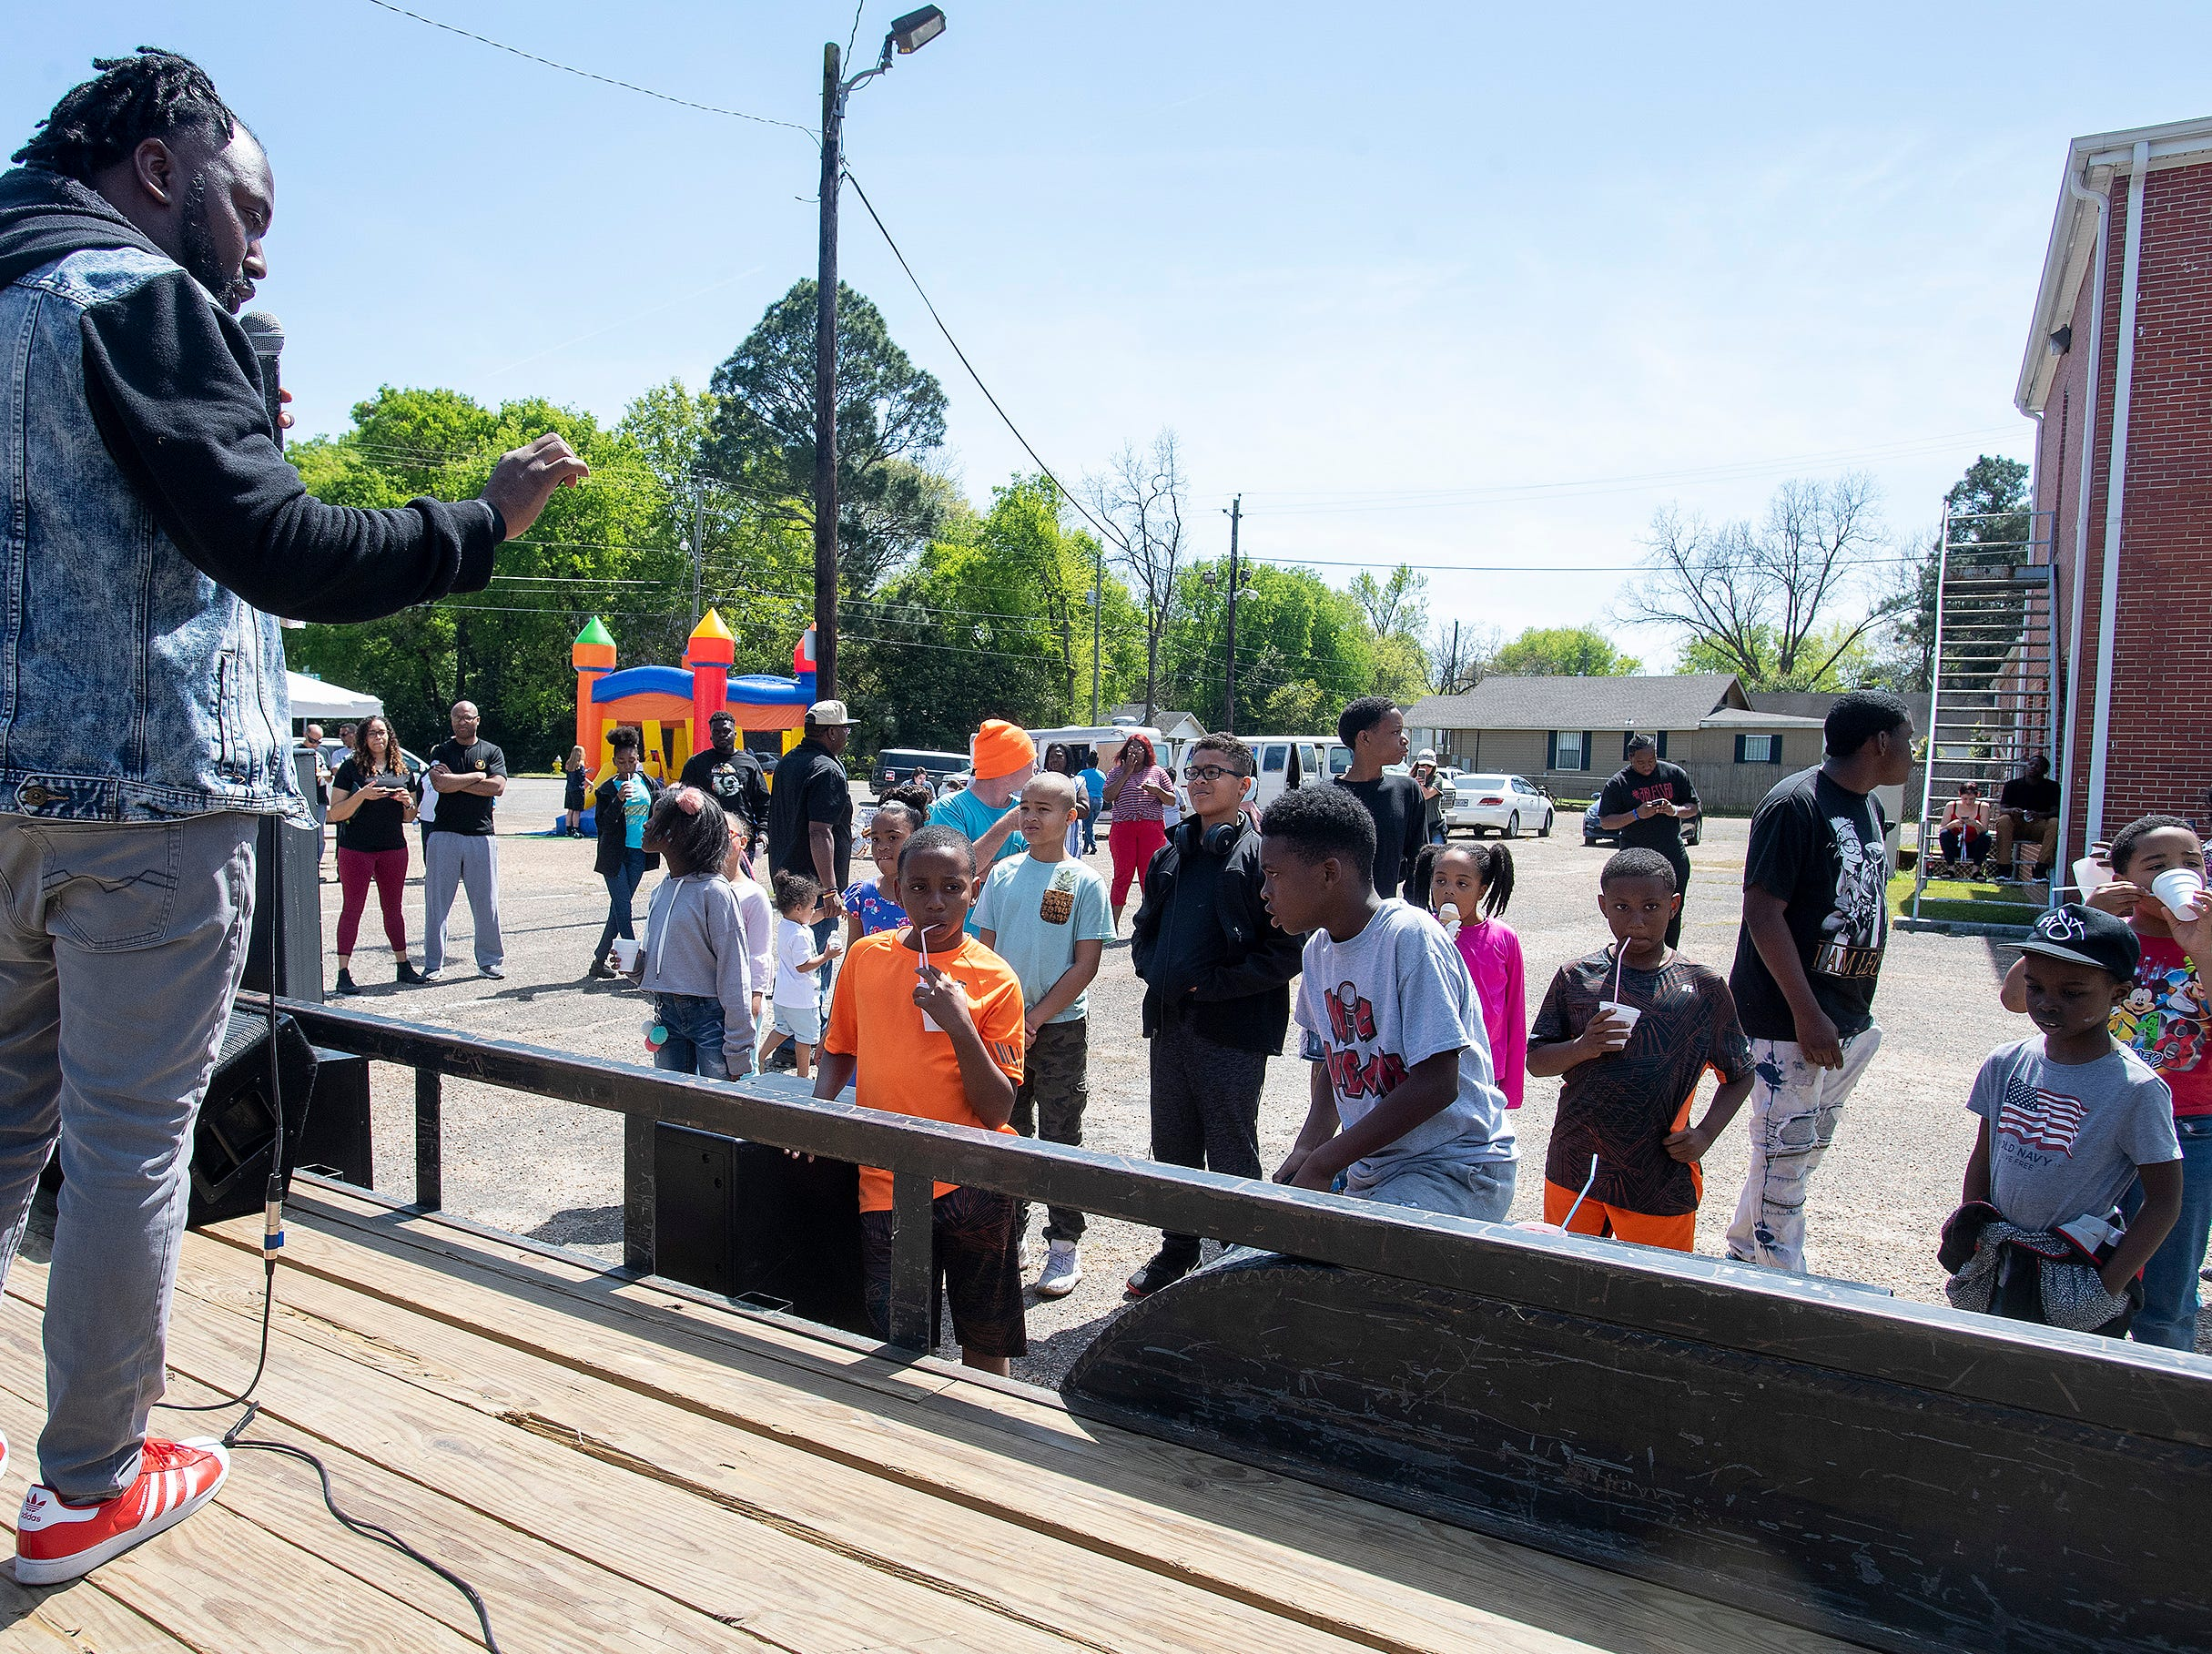 Pastor DeWayne Rembert speaks as Flatline Church hosts a block party for the Chisholm neighborhood in Montgomery, Ala., on Saturday March 23, 2019.